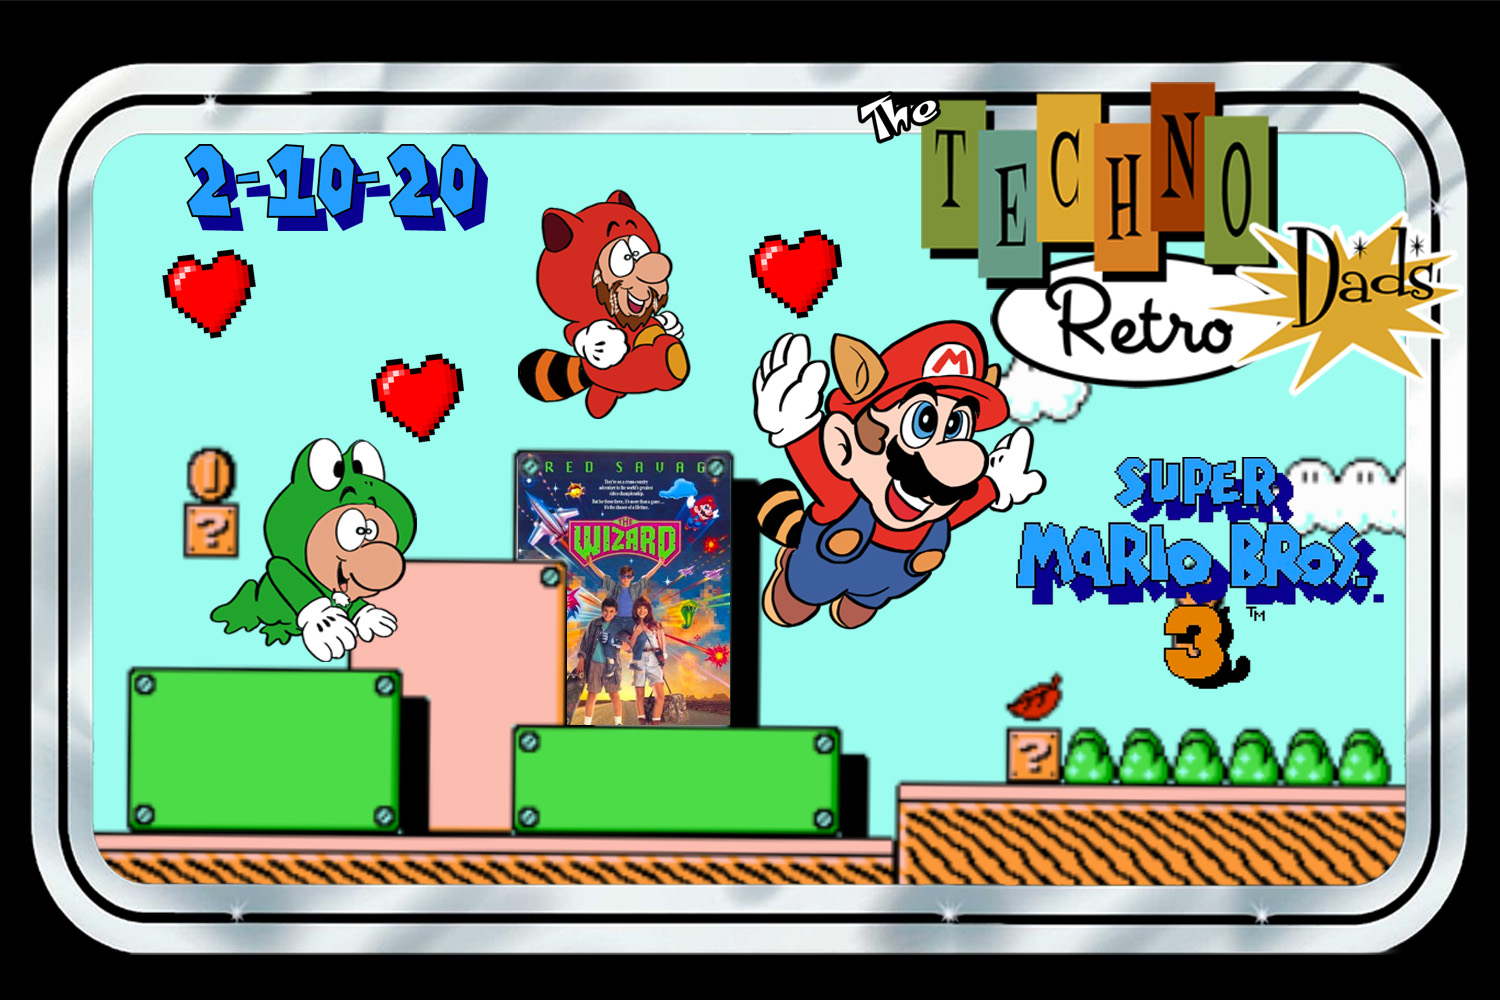 TechnoRetro Dads: The Wizard of Super Mario Bros. 3